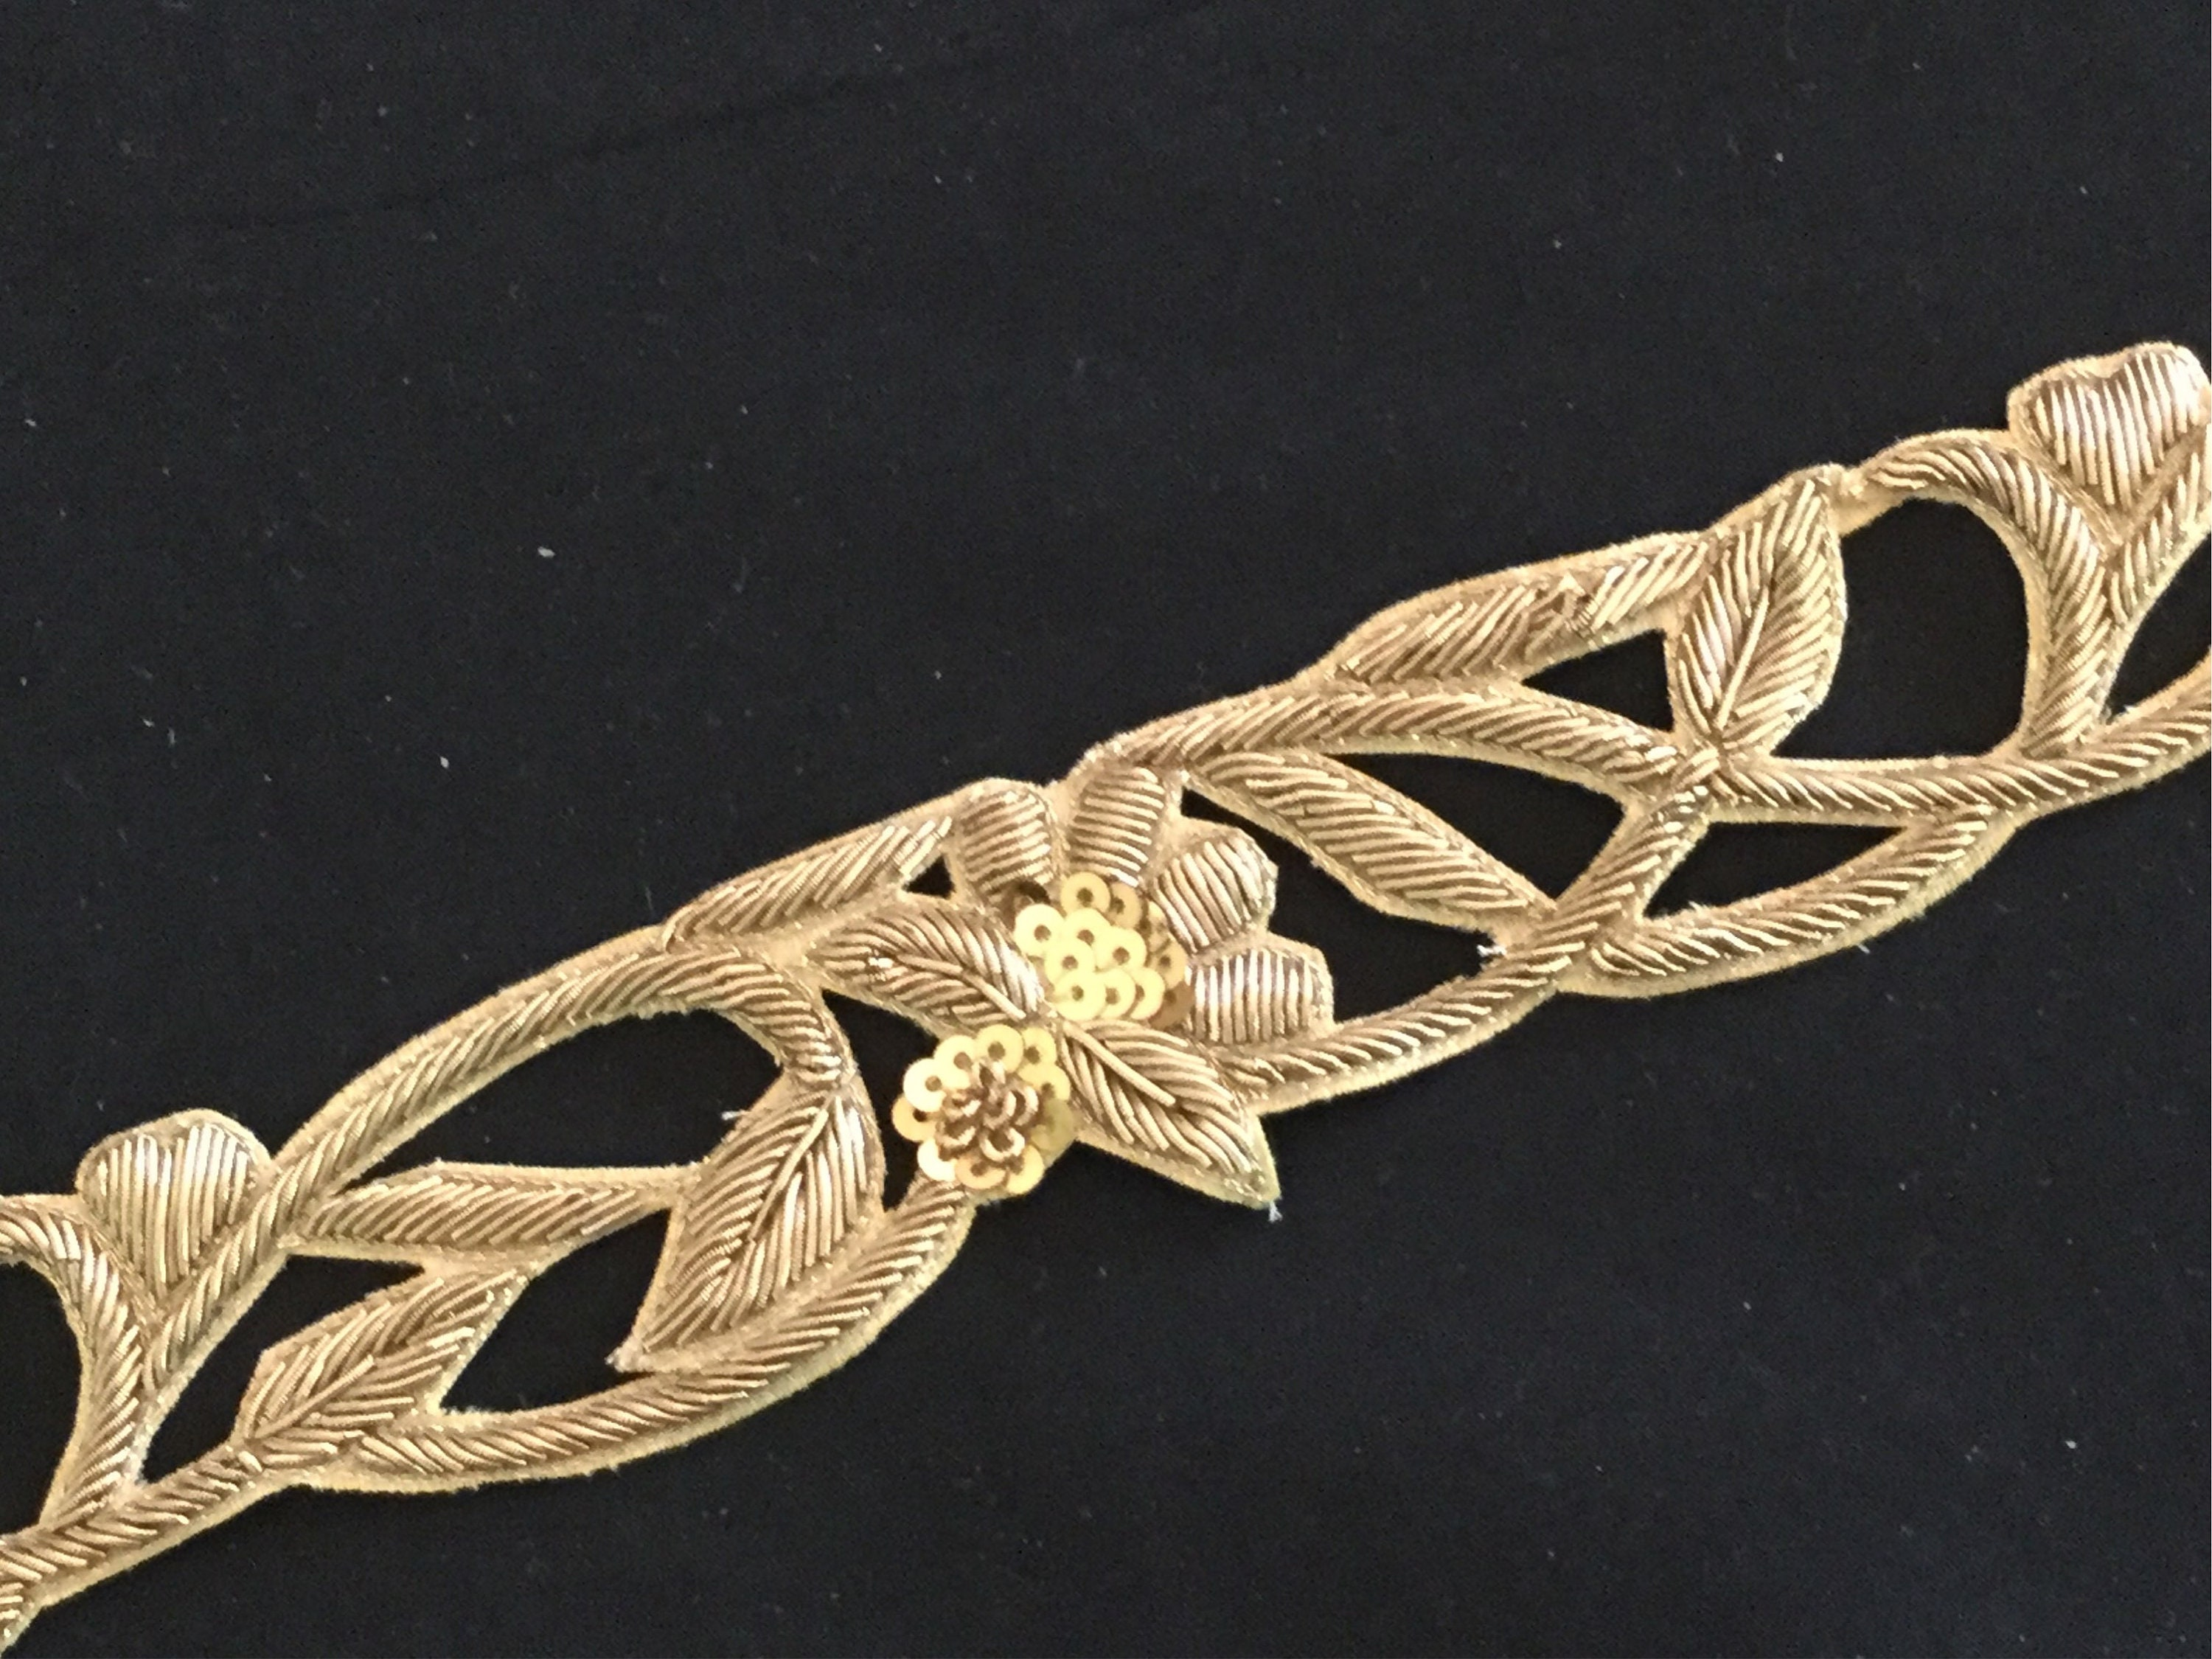 Antique trim gold green purple vintage trim floral gold never used trim one yard old mercantile store trim